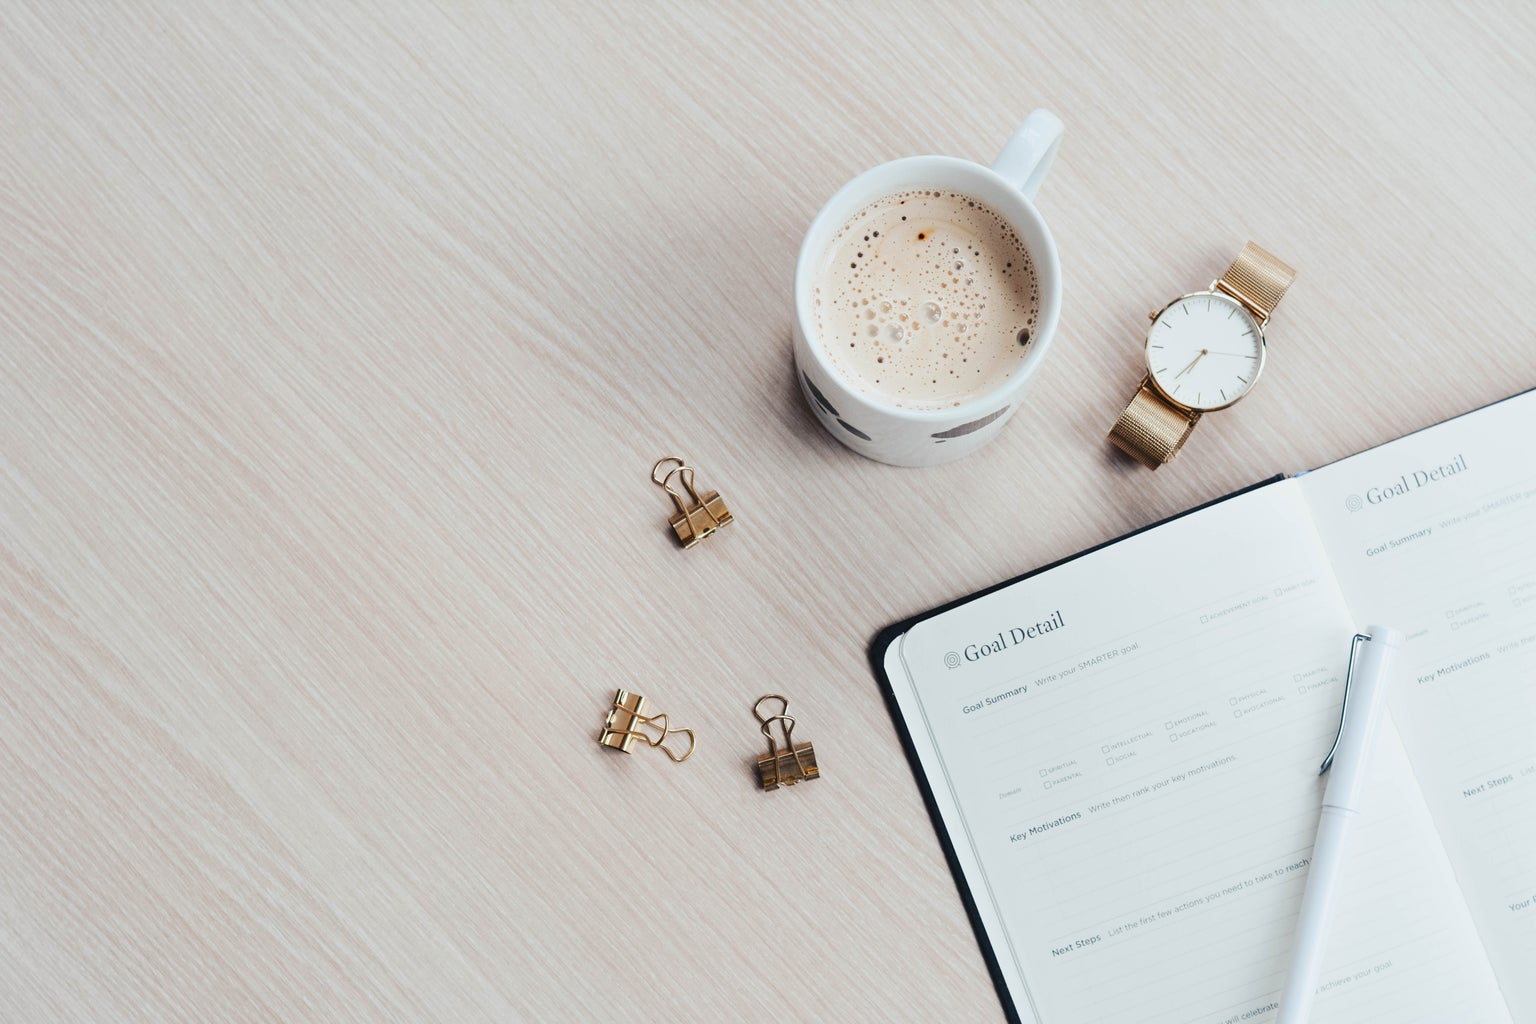 Coffee next to planner